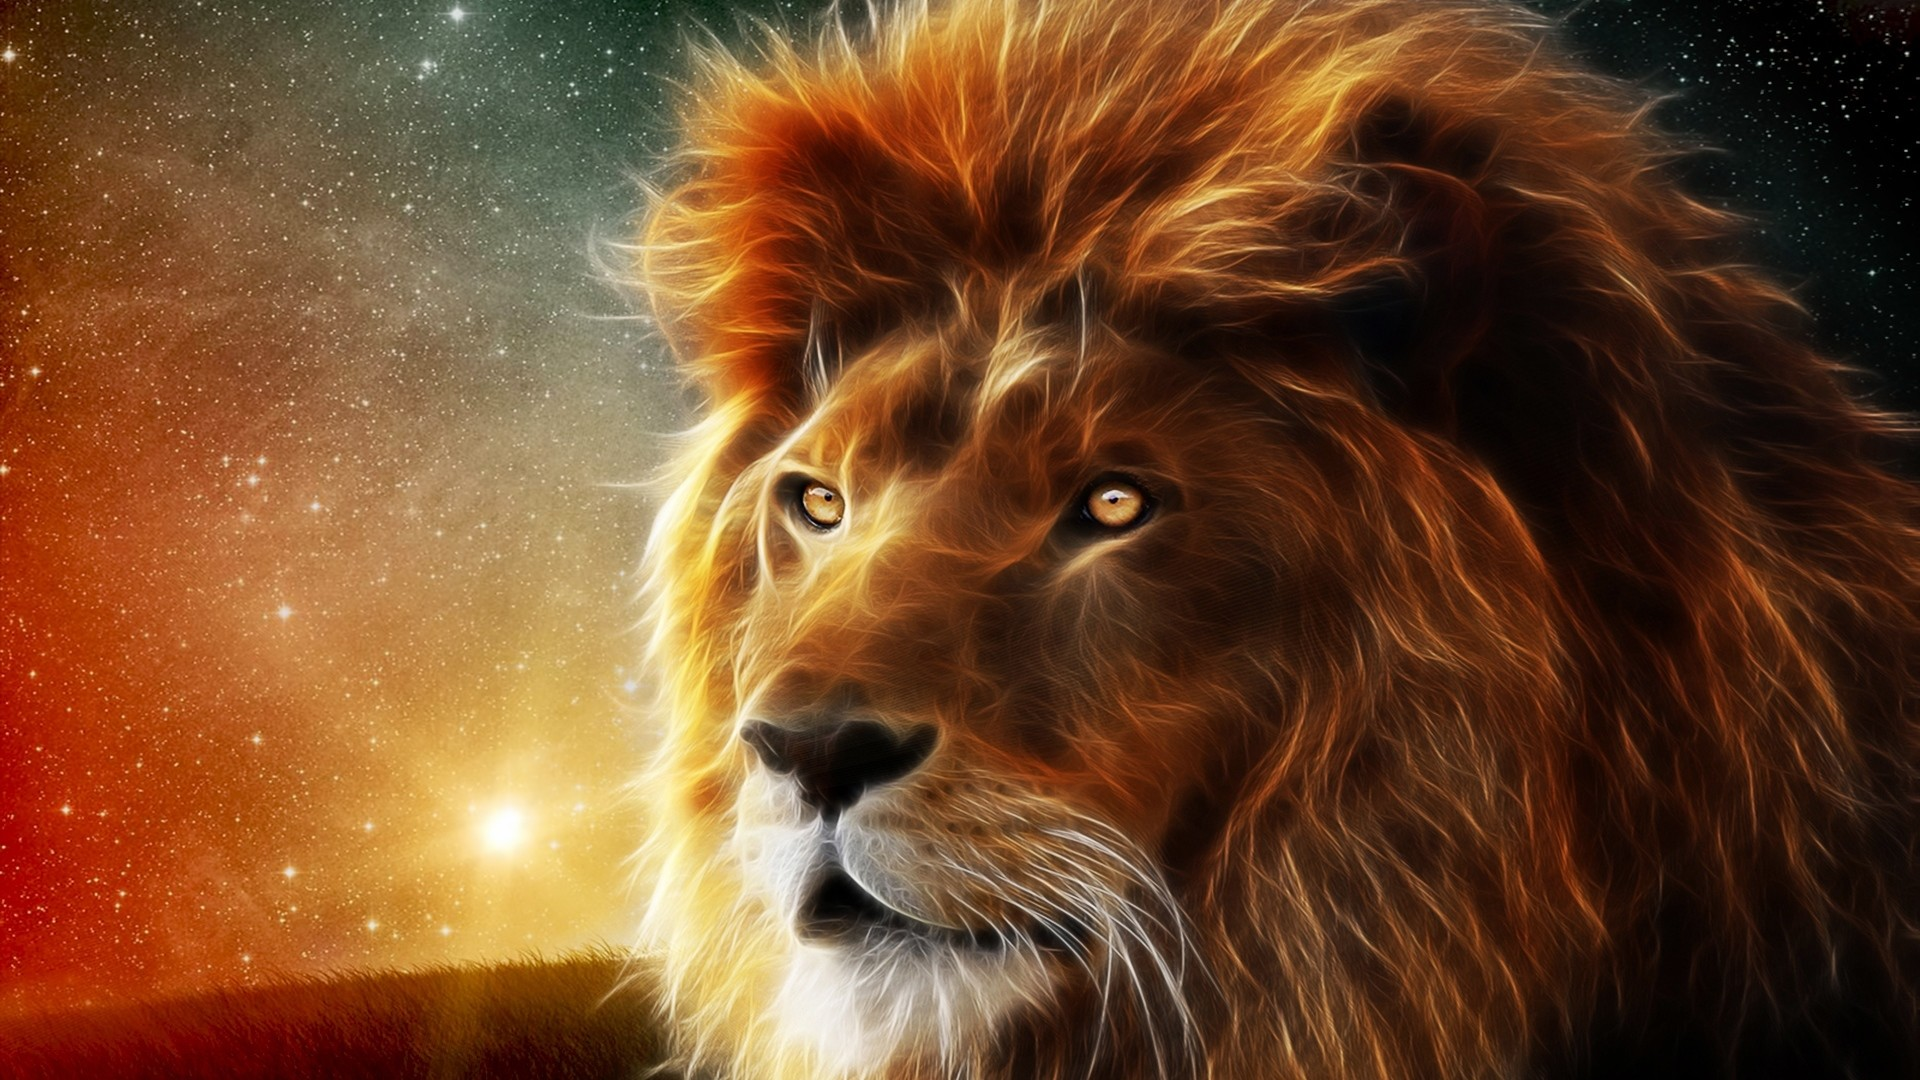 Preview wallpaper lion, face, mane, king of beasts, abstraction 1920×1080